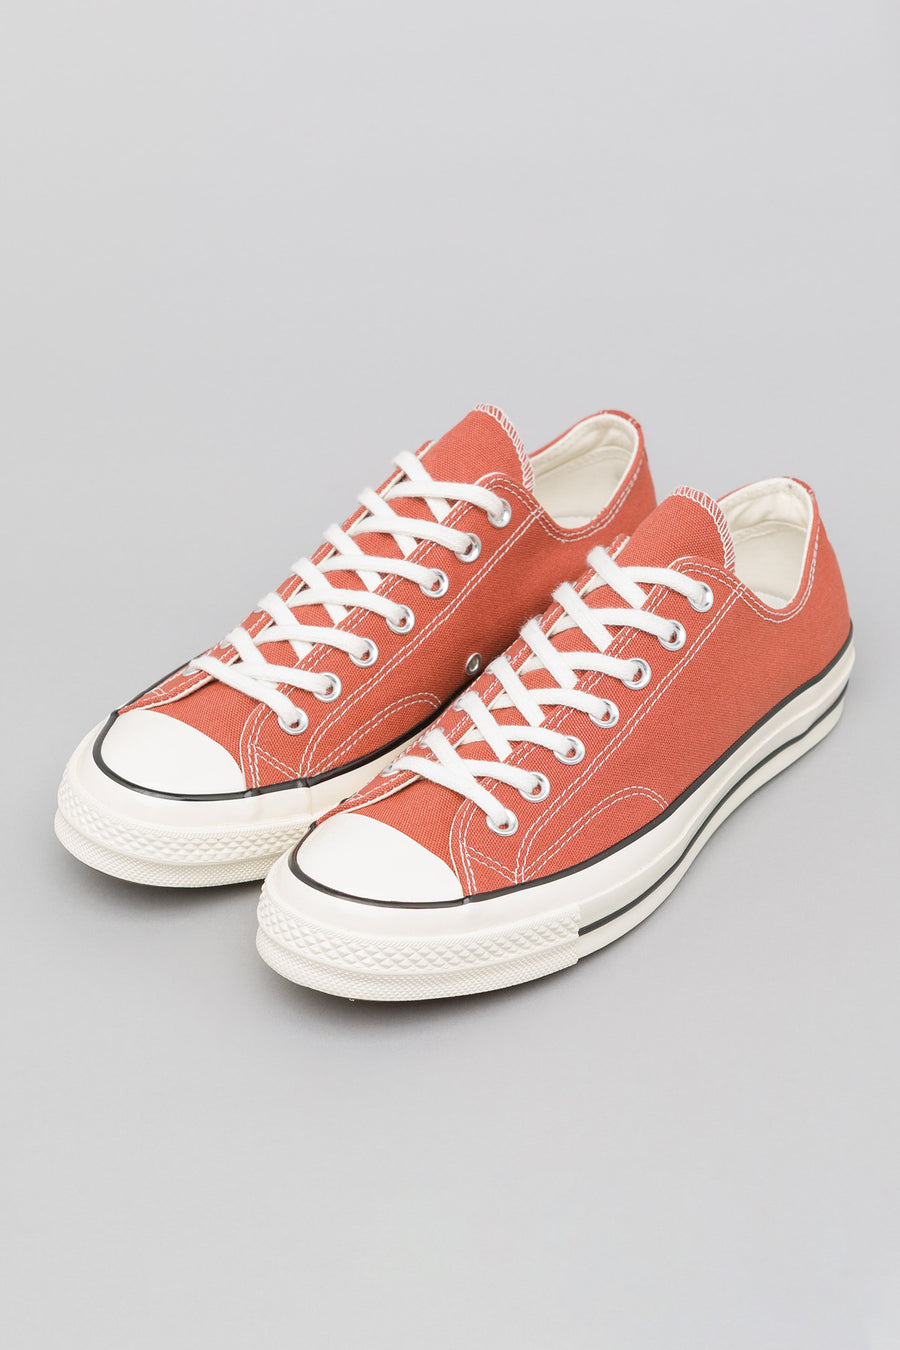 Converse Chuck 70 Ox in Dusty Peach - Notre